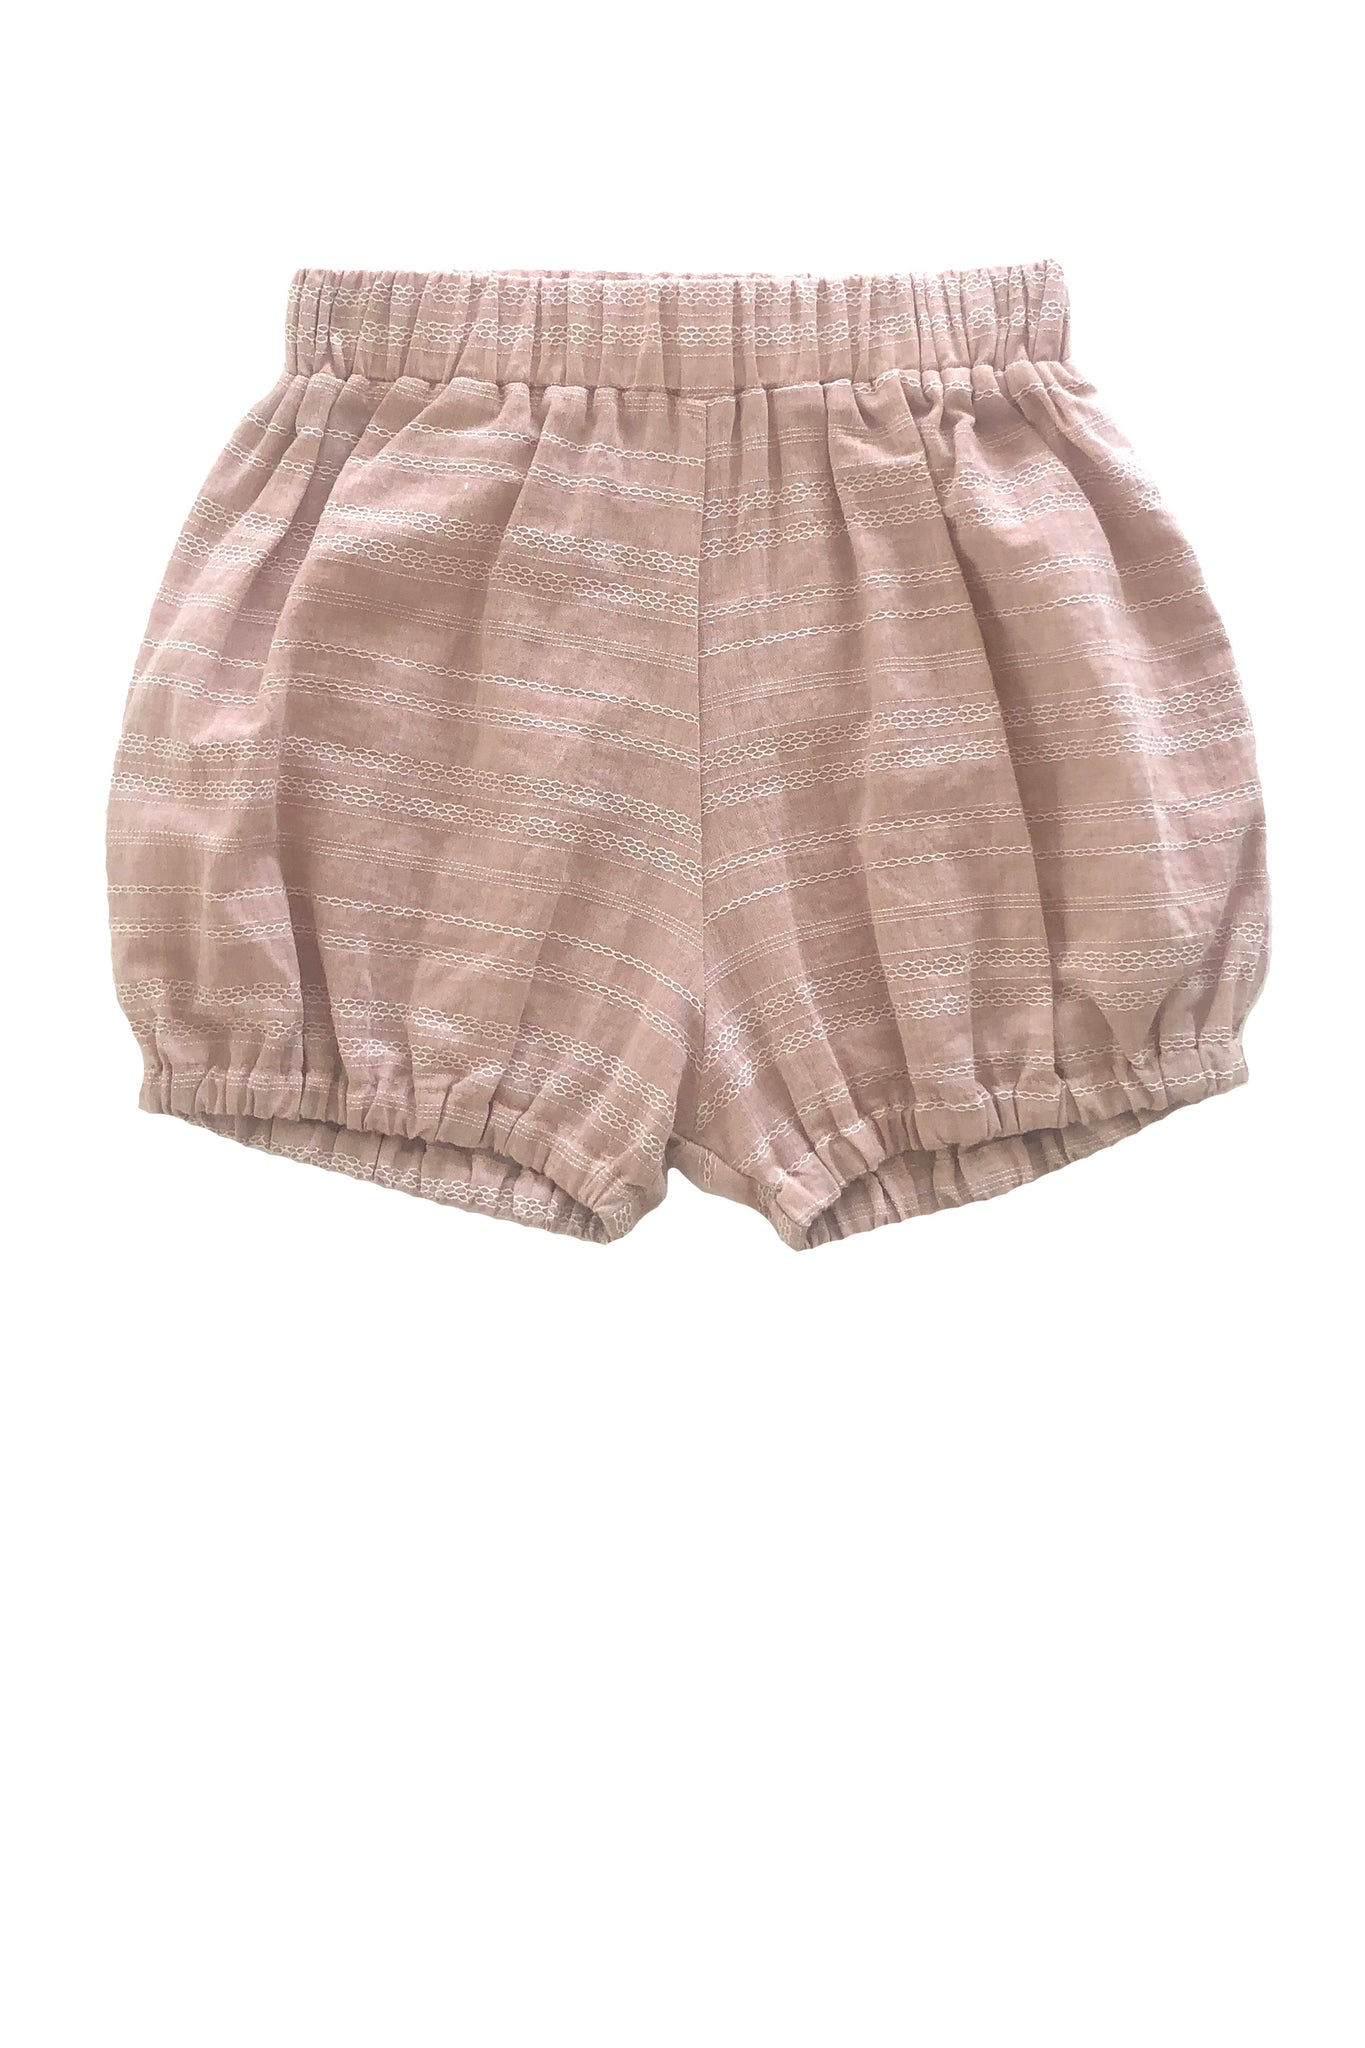 Bloomer Shorts in Mauve